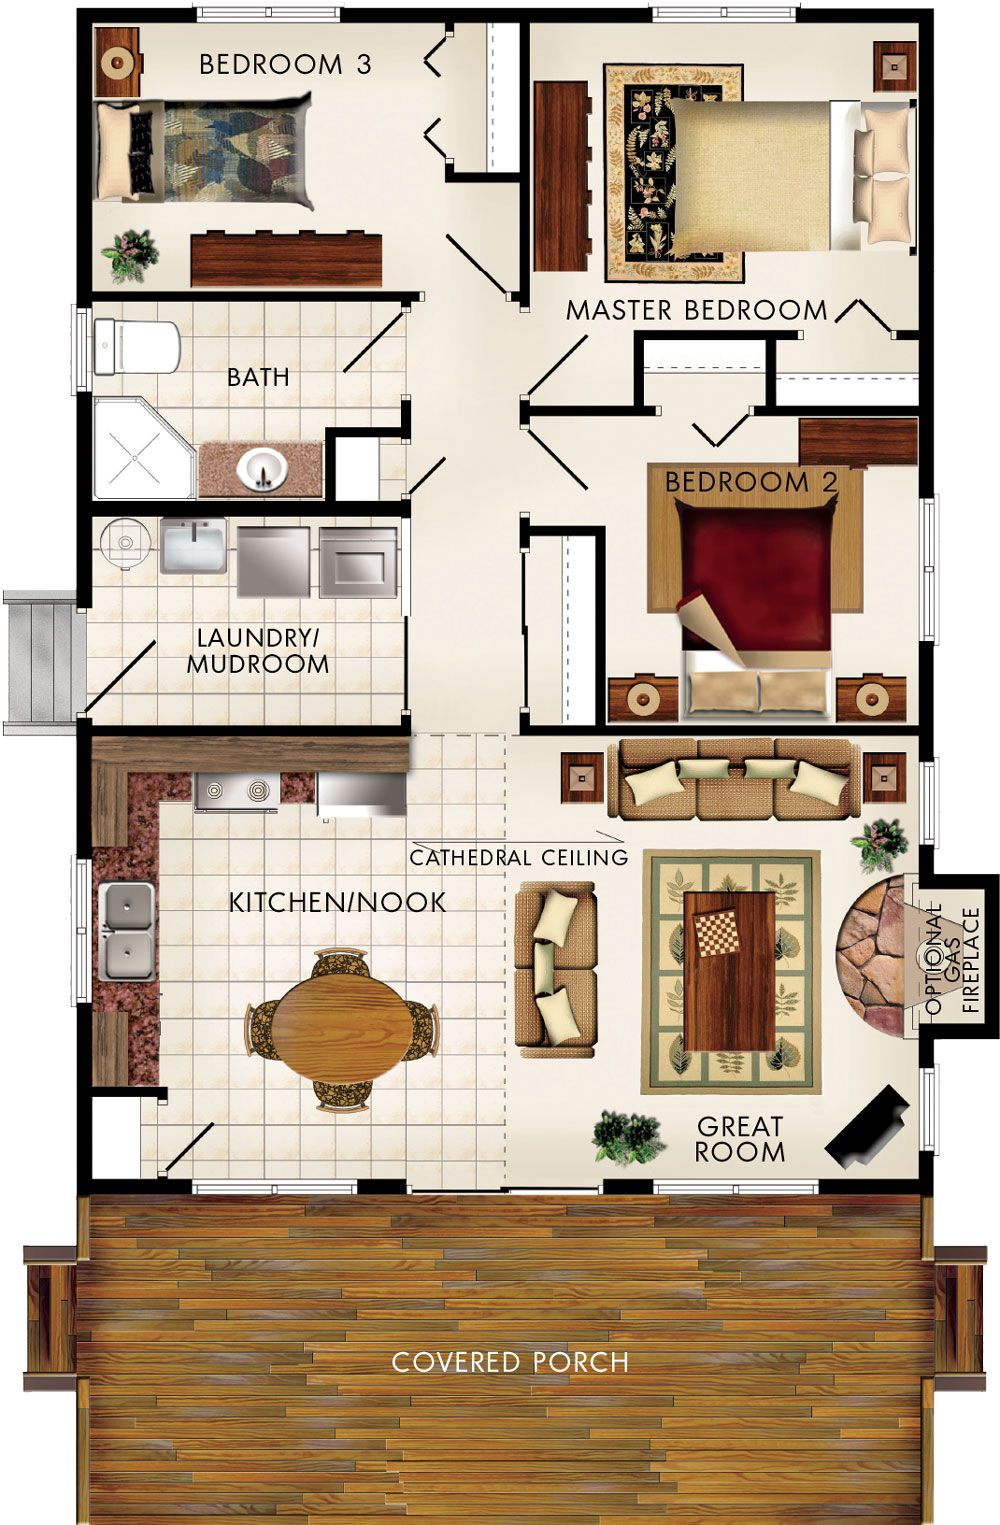 Cost Effective 936 Sf Home With Amazing Use Of Space The Front Porch Vaulted Ceiling Carries T Beaver Homes And Cottages Basement House Plans New House Plans